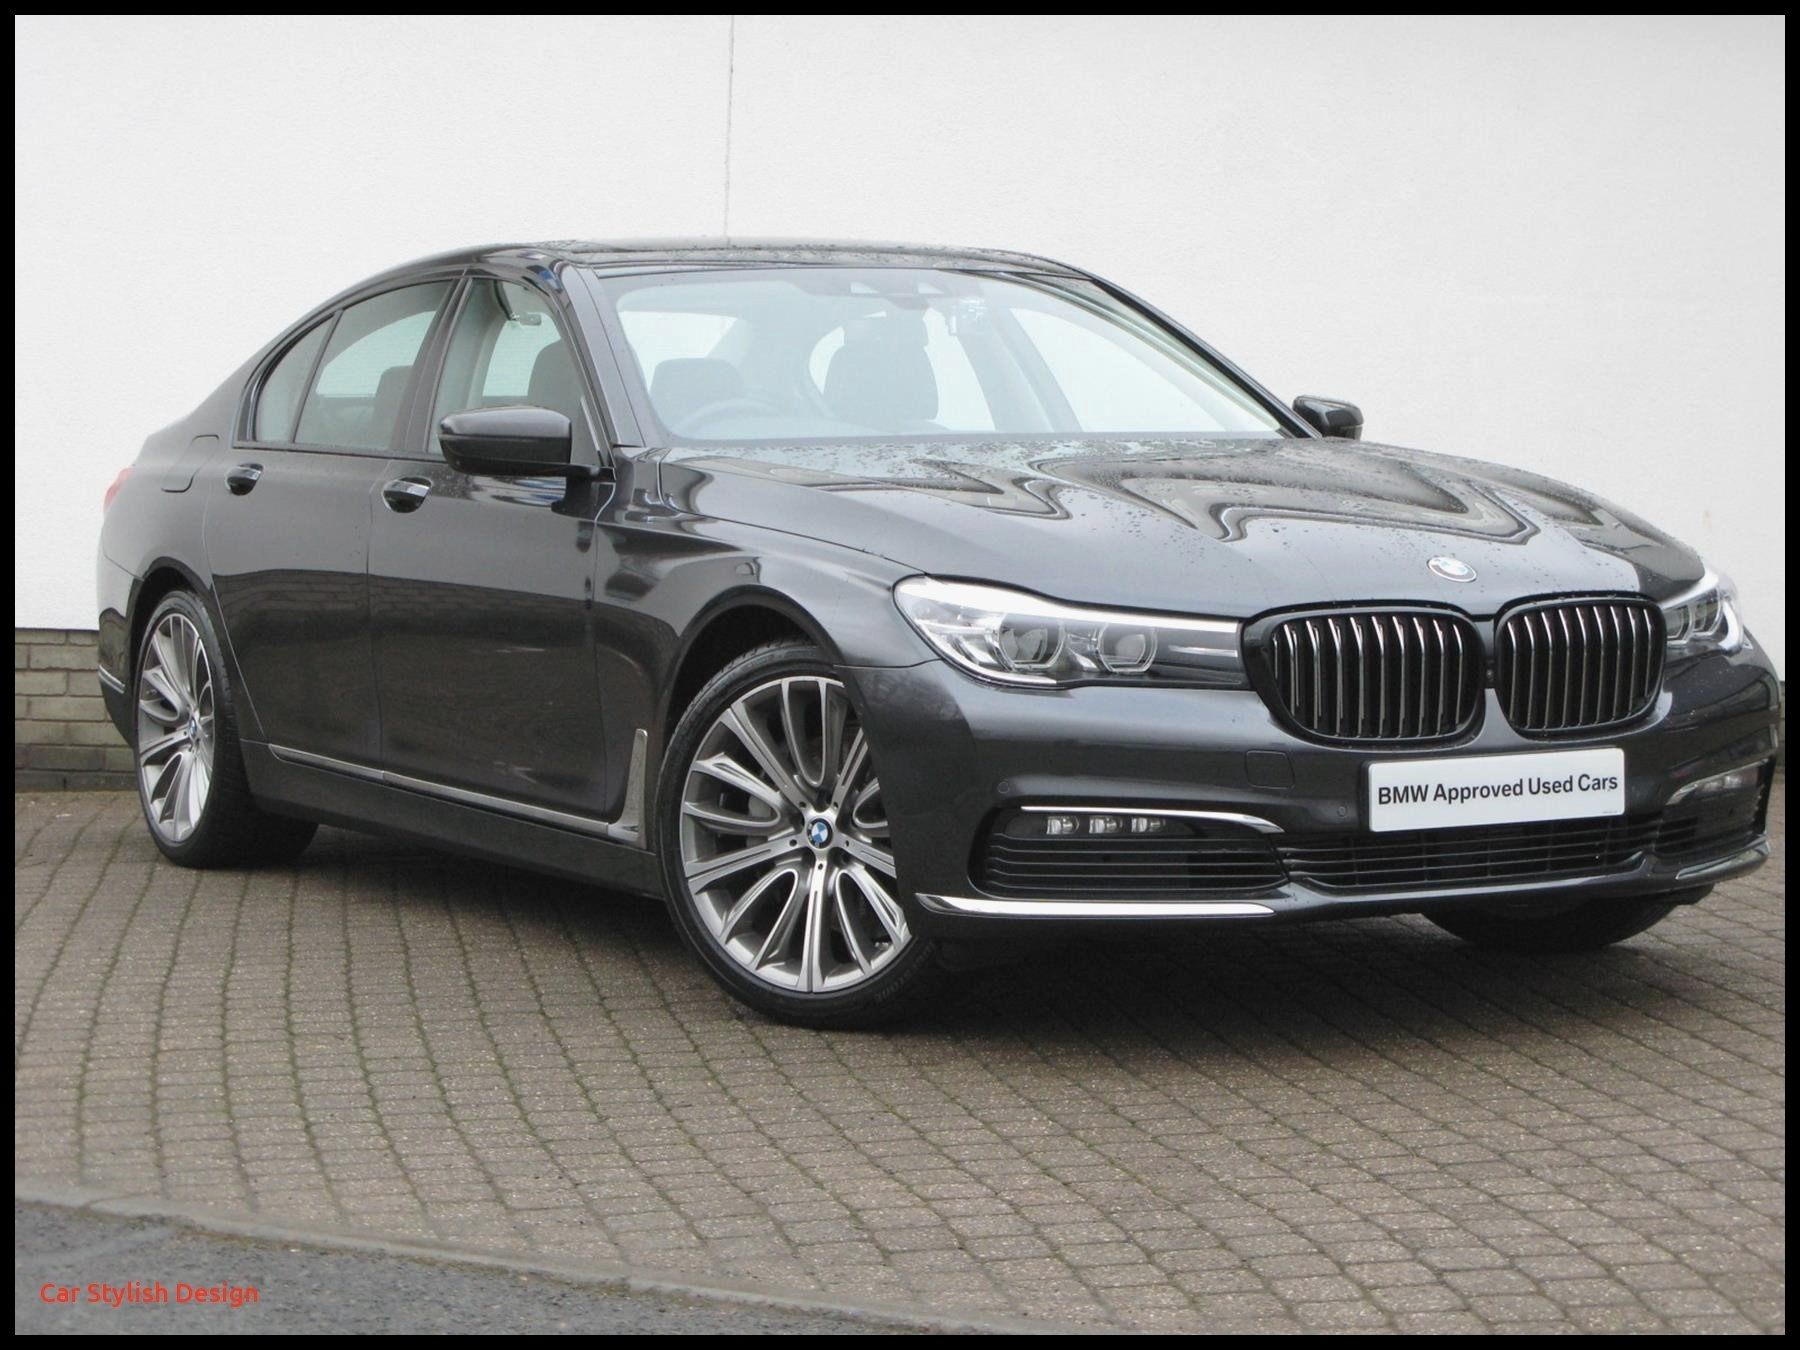 Advantage Bmw Unique Awesome Used 2017 Bmw 7 Series G11 740d Xdrive Saloon B57 3 0d